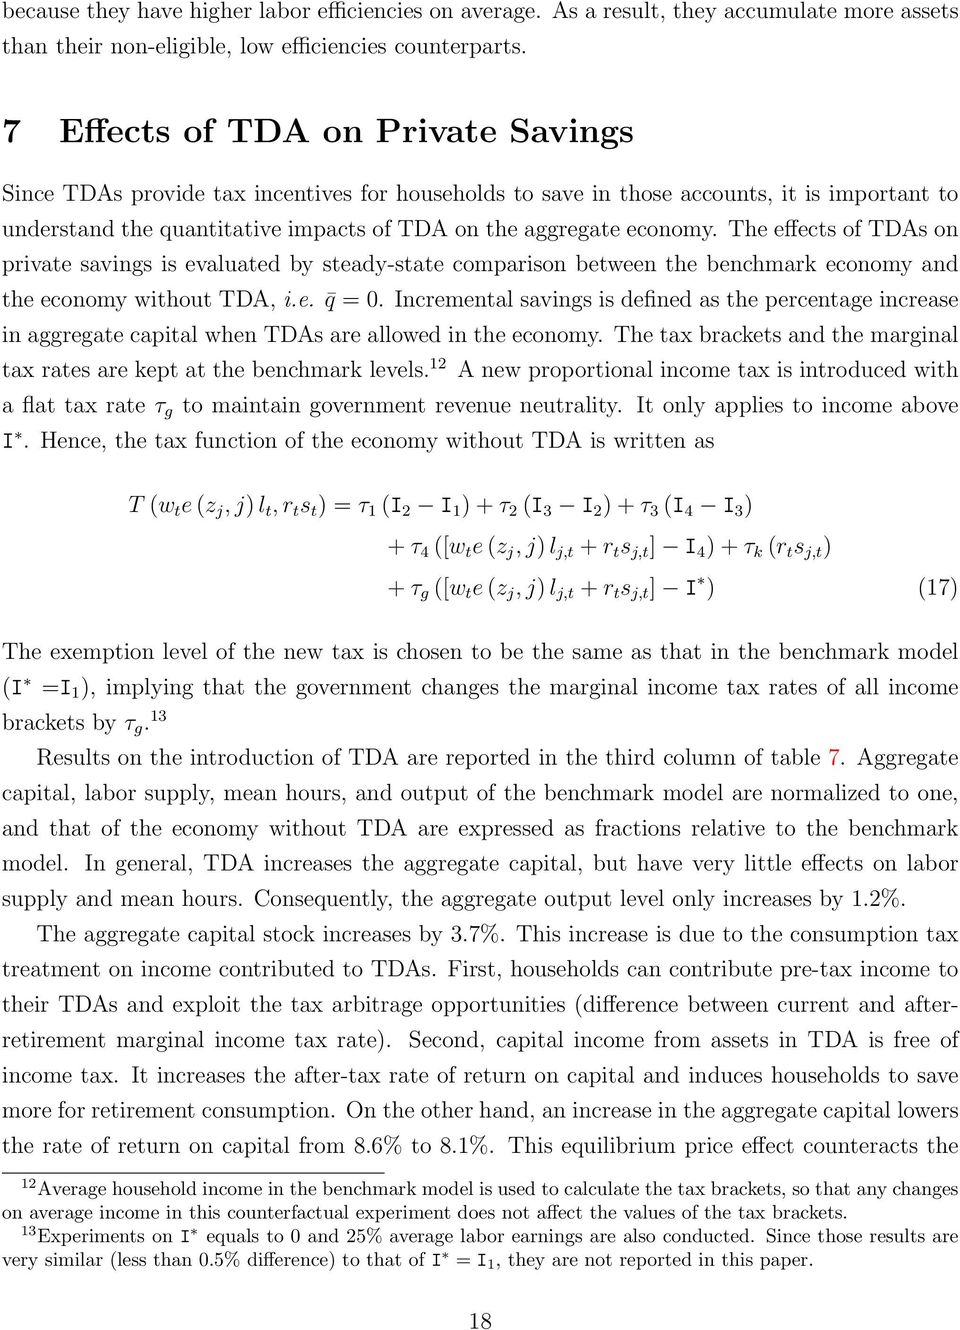 The effects of TDAs on private savings is evaluated by steady-state comparison between the benchmark economy and the economy without TDA, i.e. q = 0.